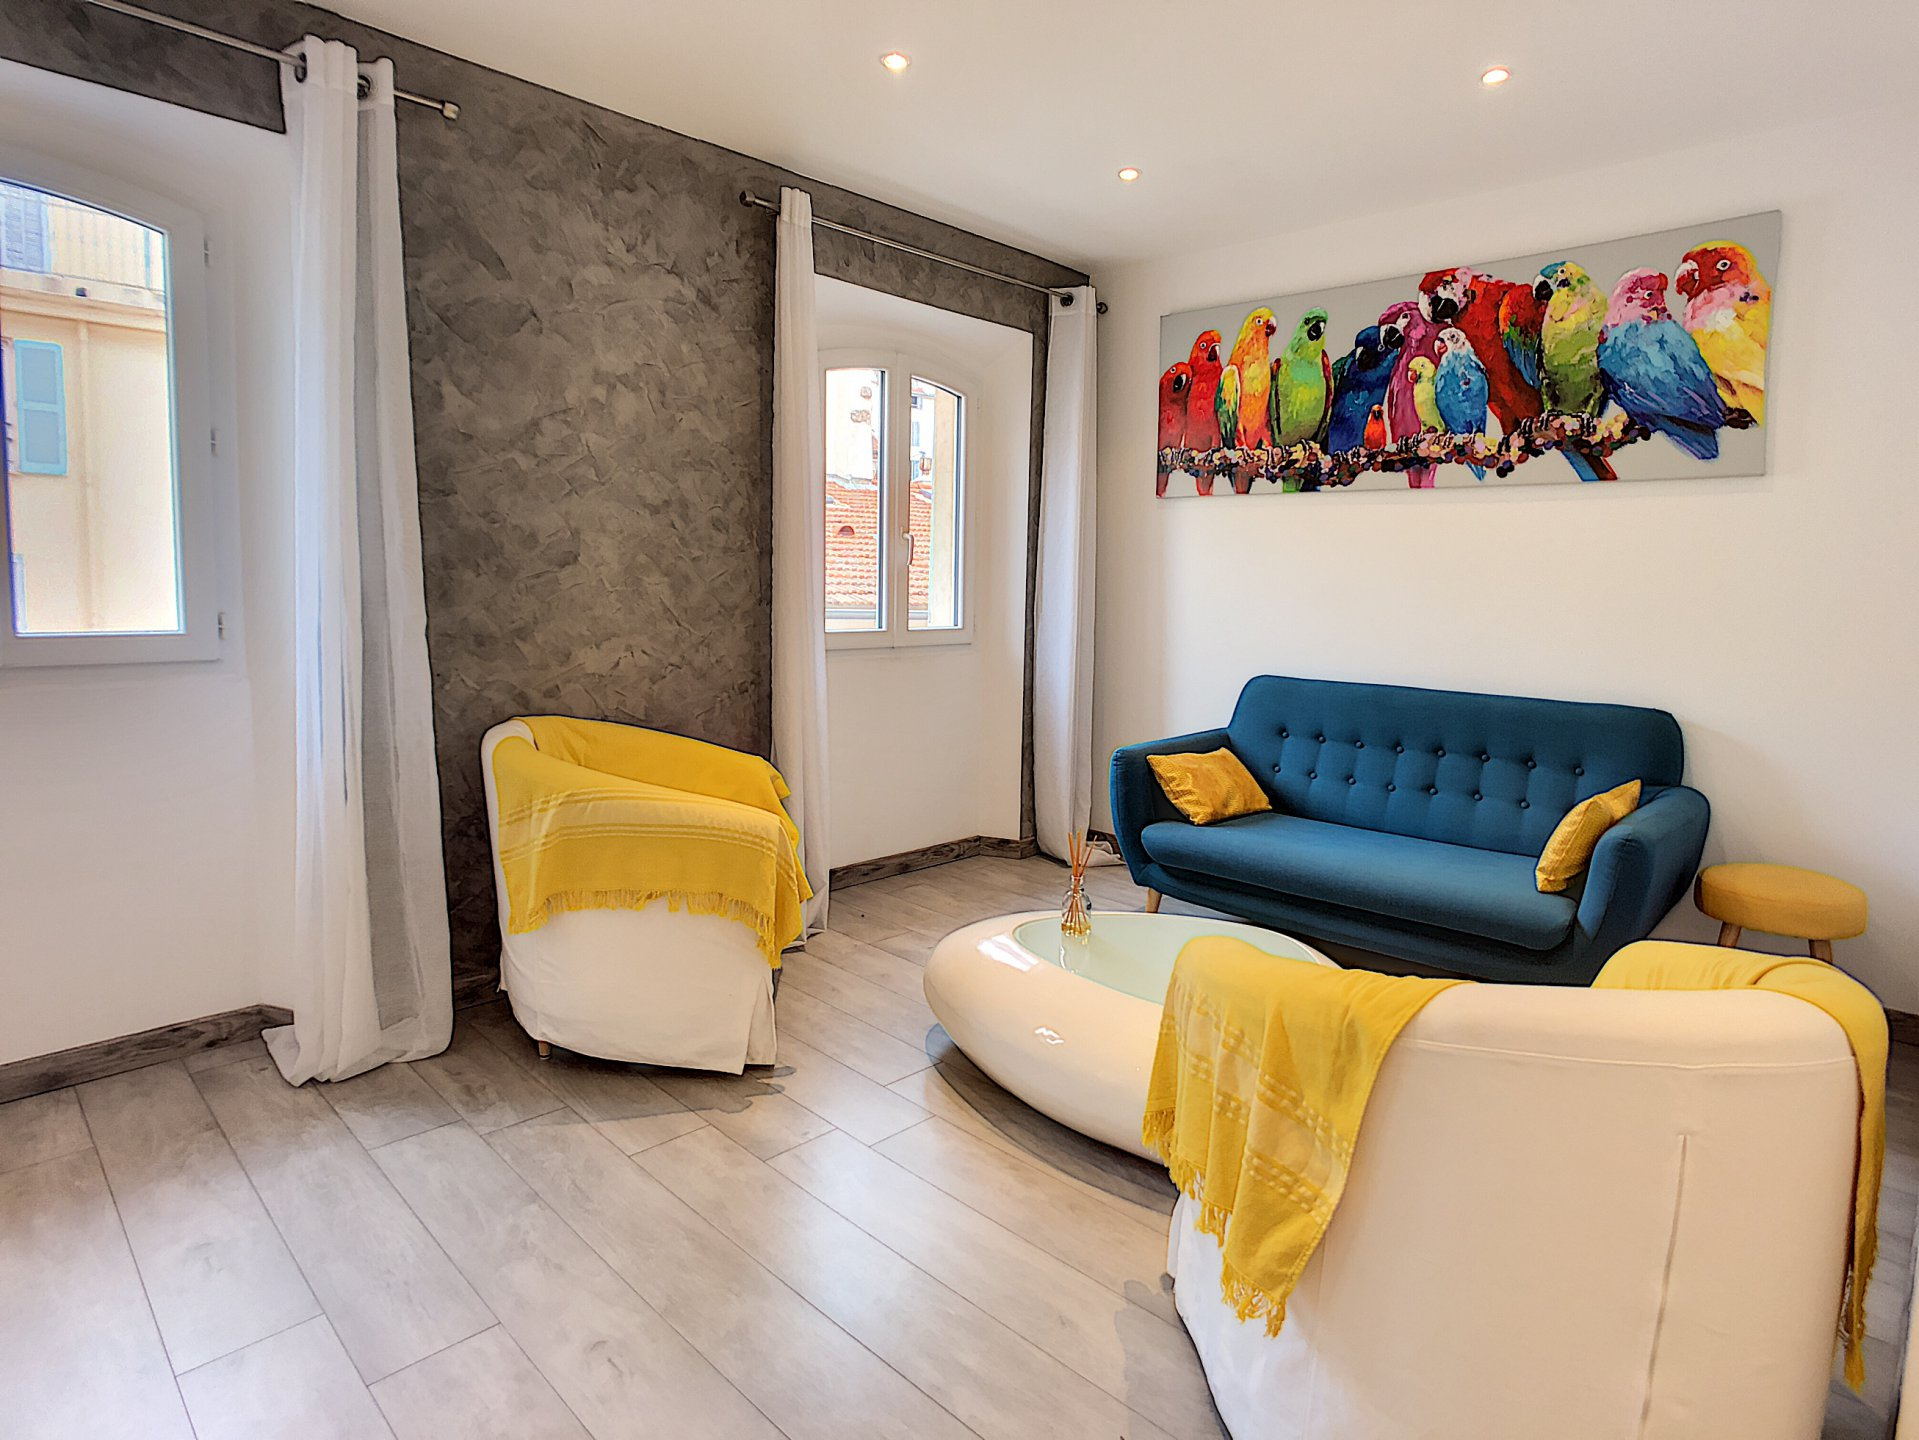 Duplex apartment in the heart of Cannes, two minutes from the sea